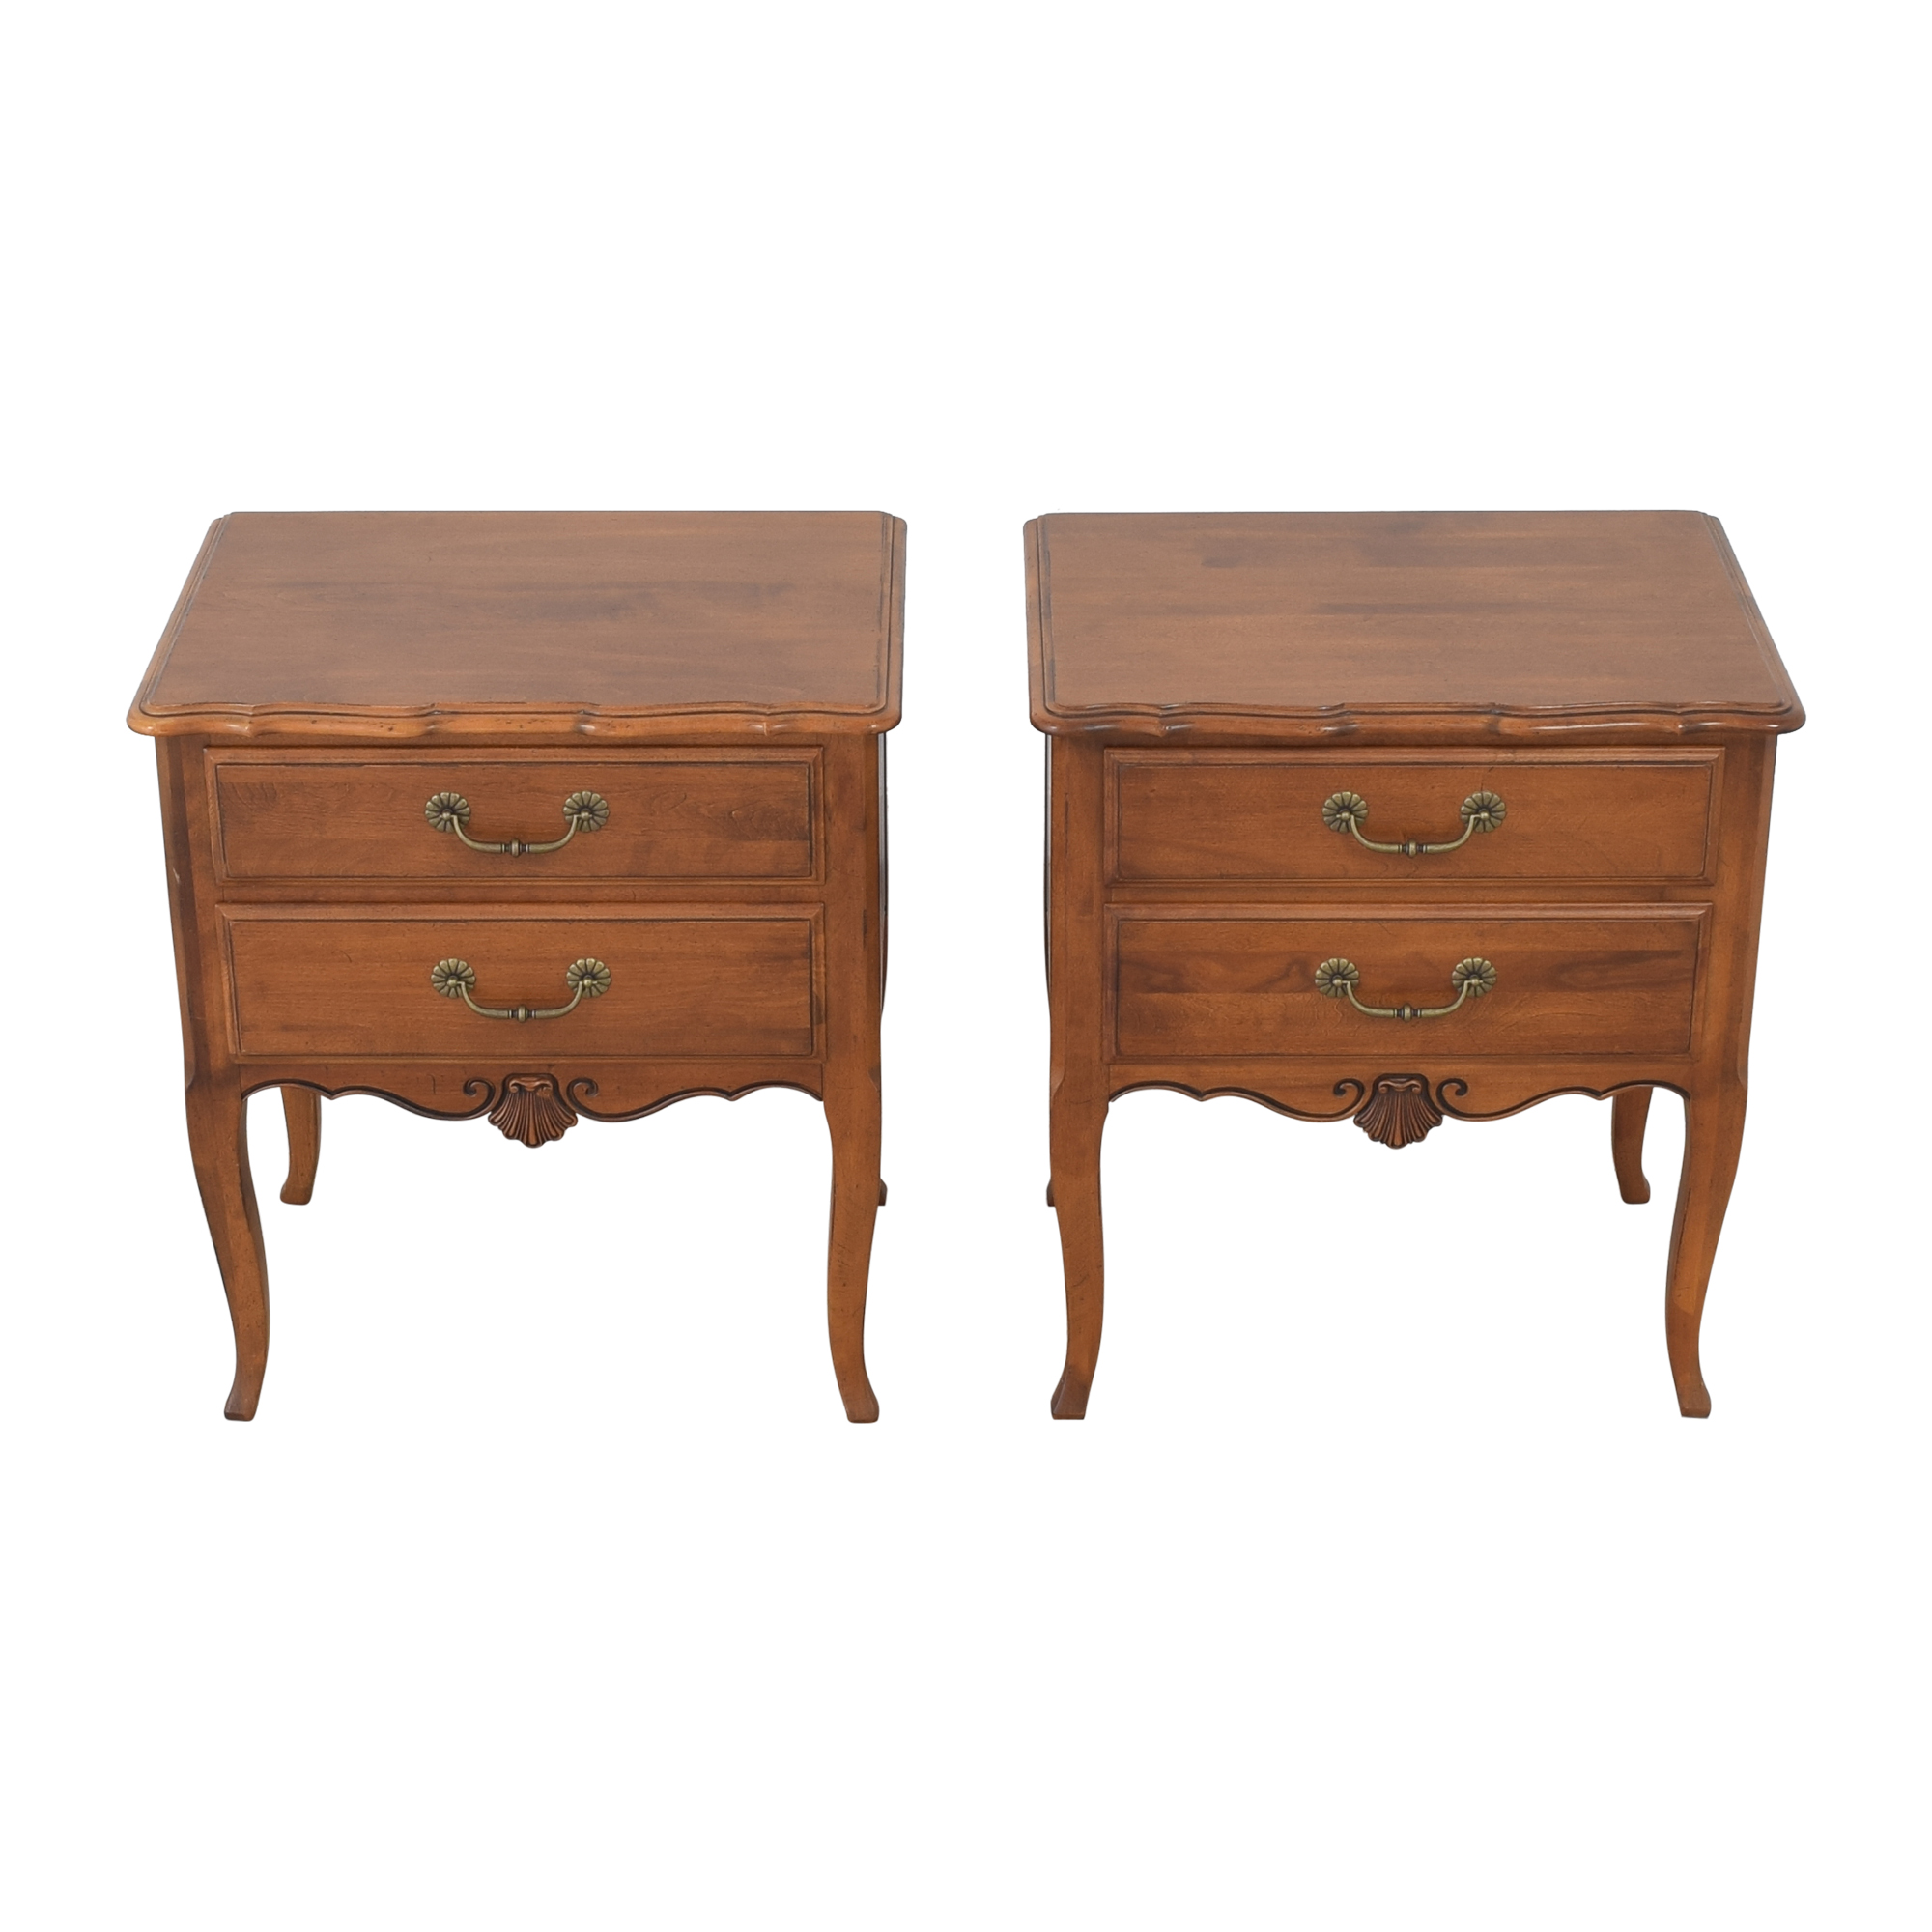 Ethan Allen Ethan Allen Country French End Tables discount